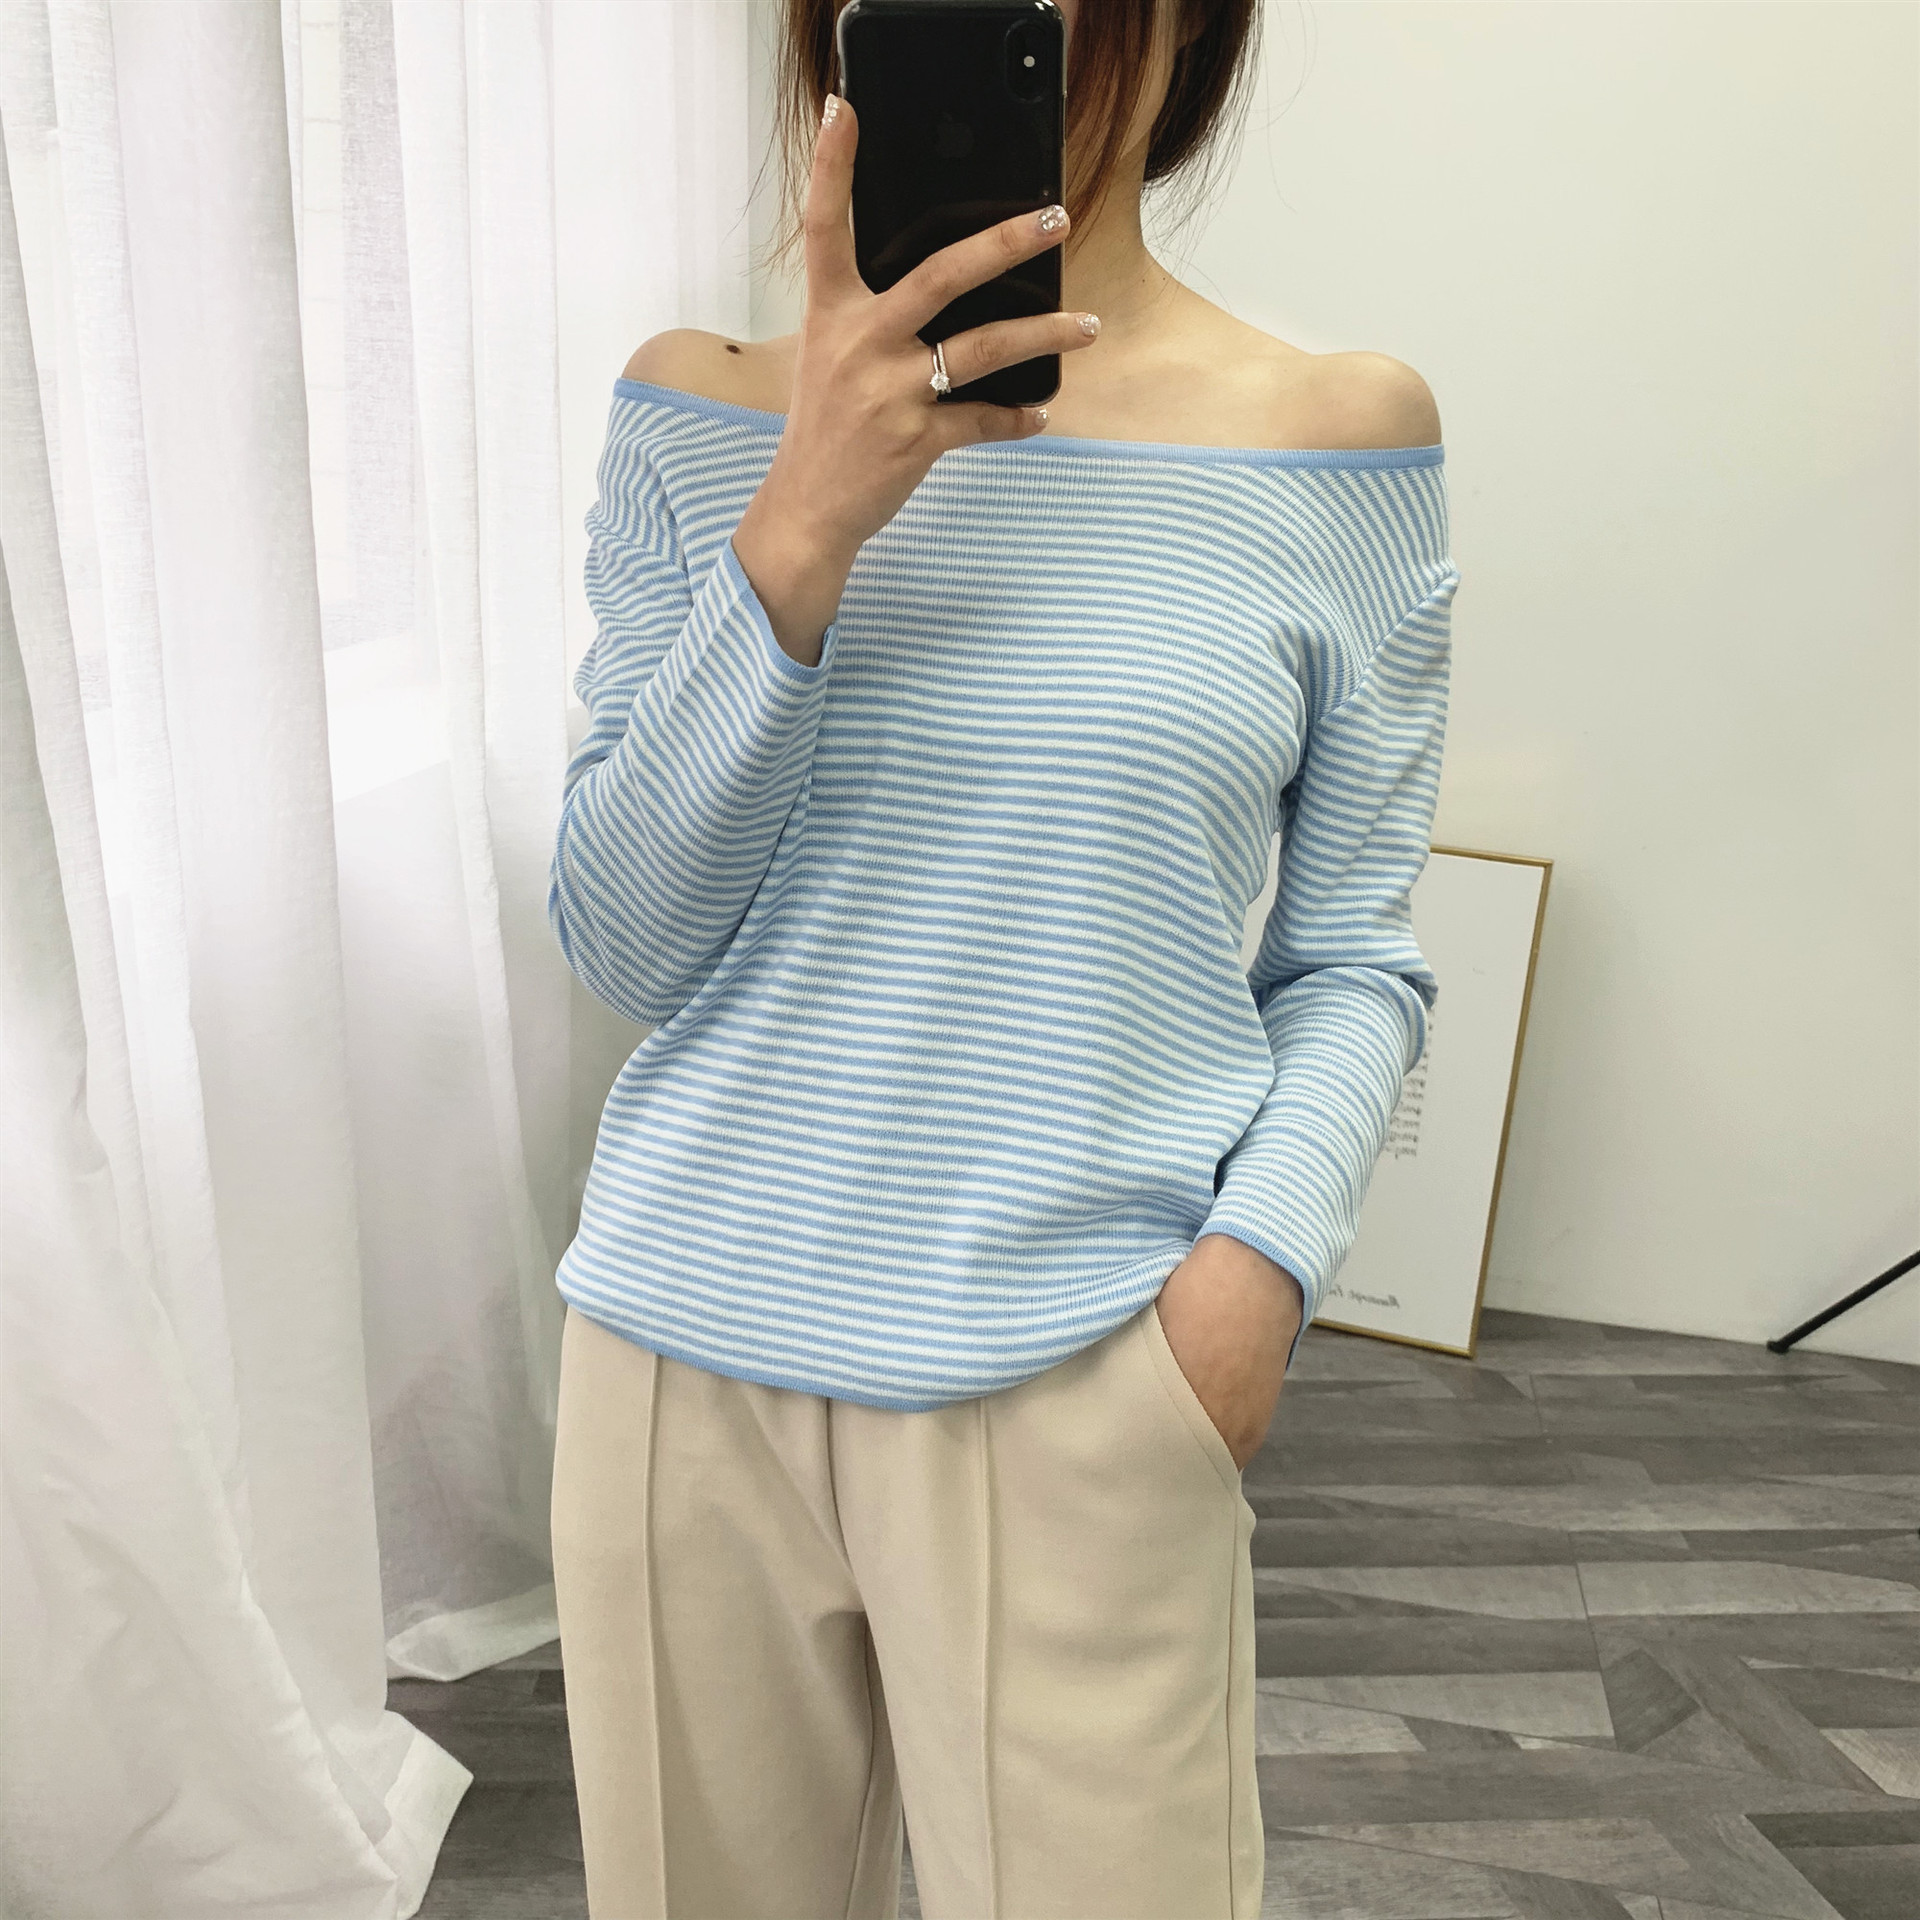 Slash Neck Autumn Winter Stripe Sweater Women Slim Pullover Sweater Large Size Knitted Basic Female Jumpers Koean Style AA061S50(China)